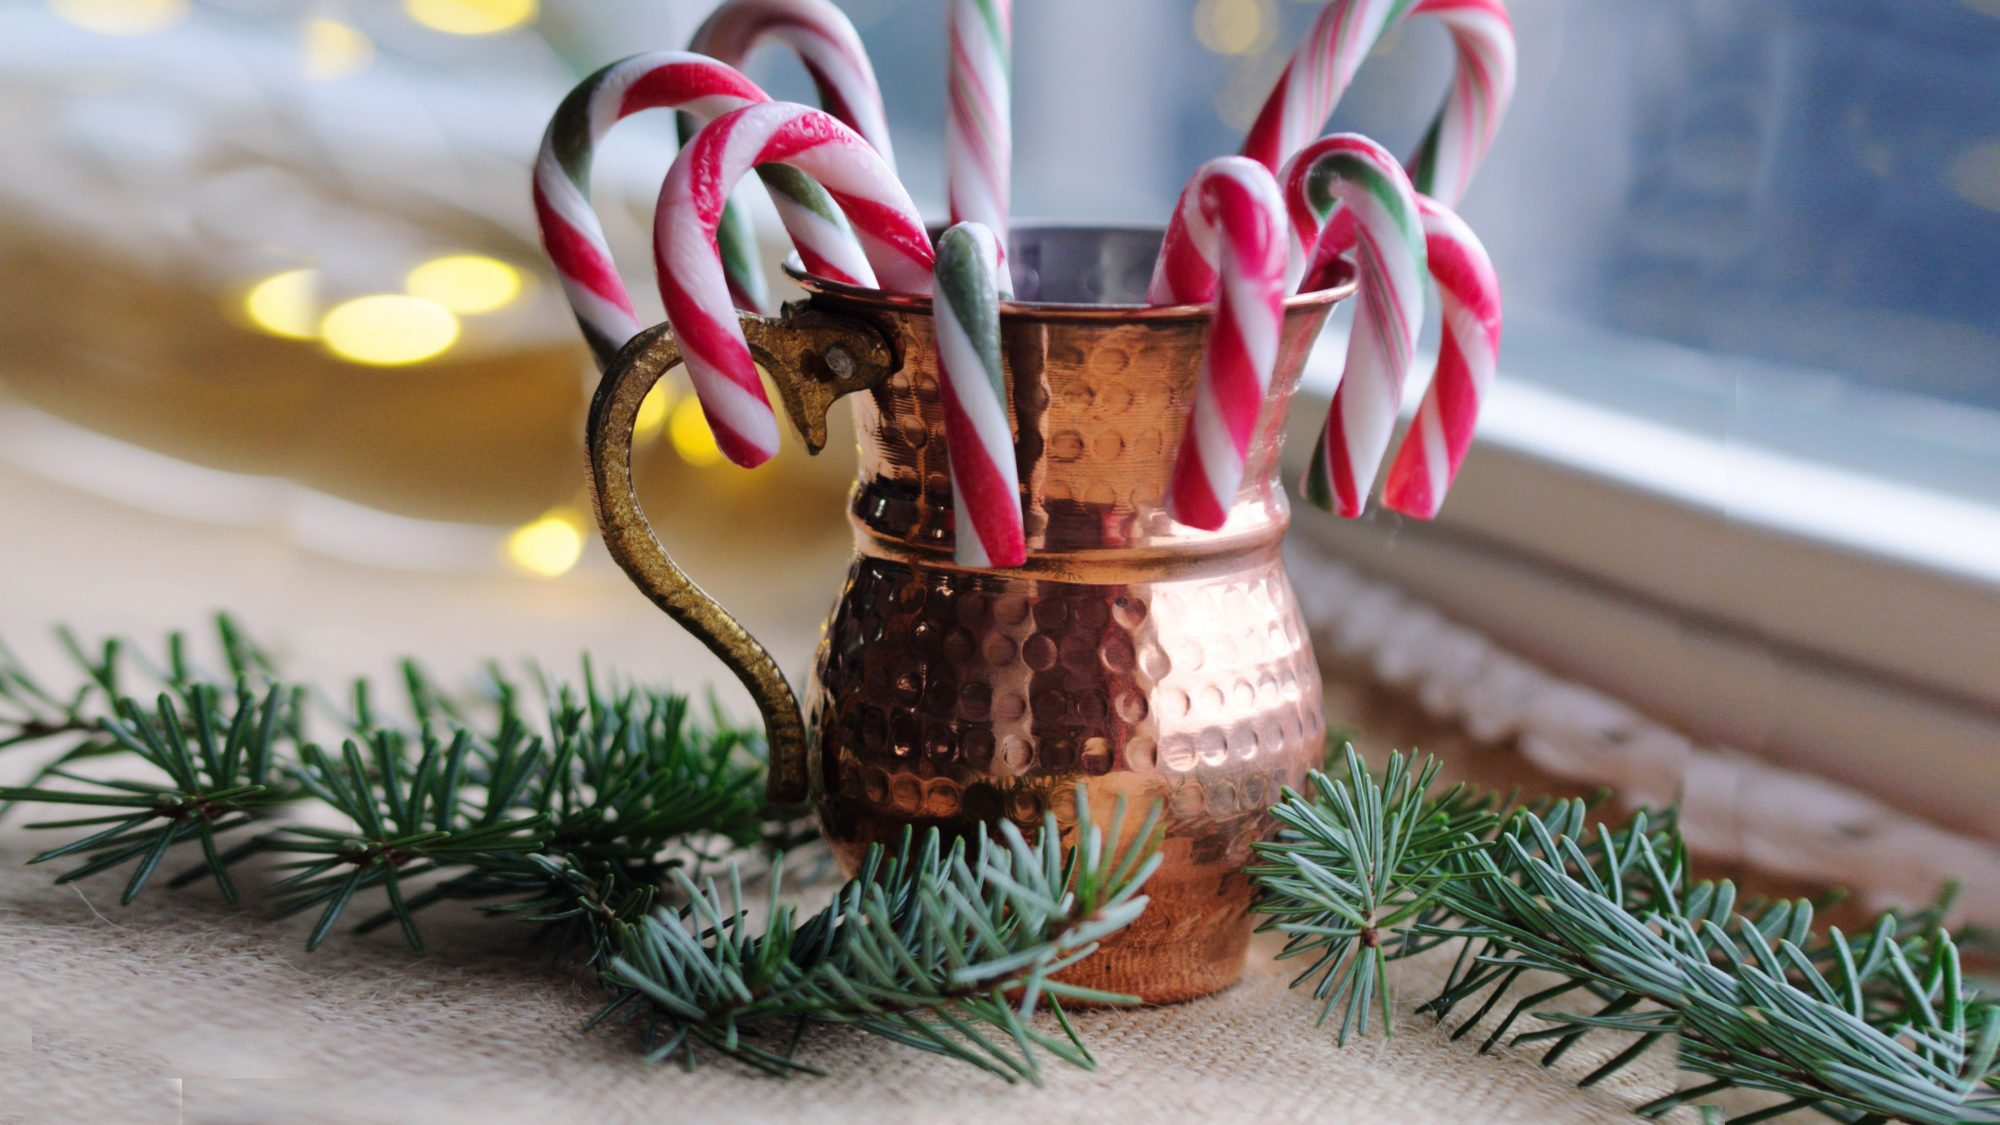 holiday-decorating-tips-mr-christmas: candy canes in mug